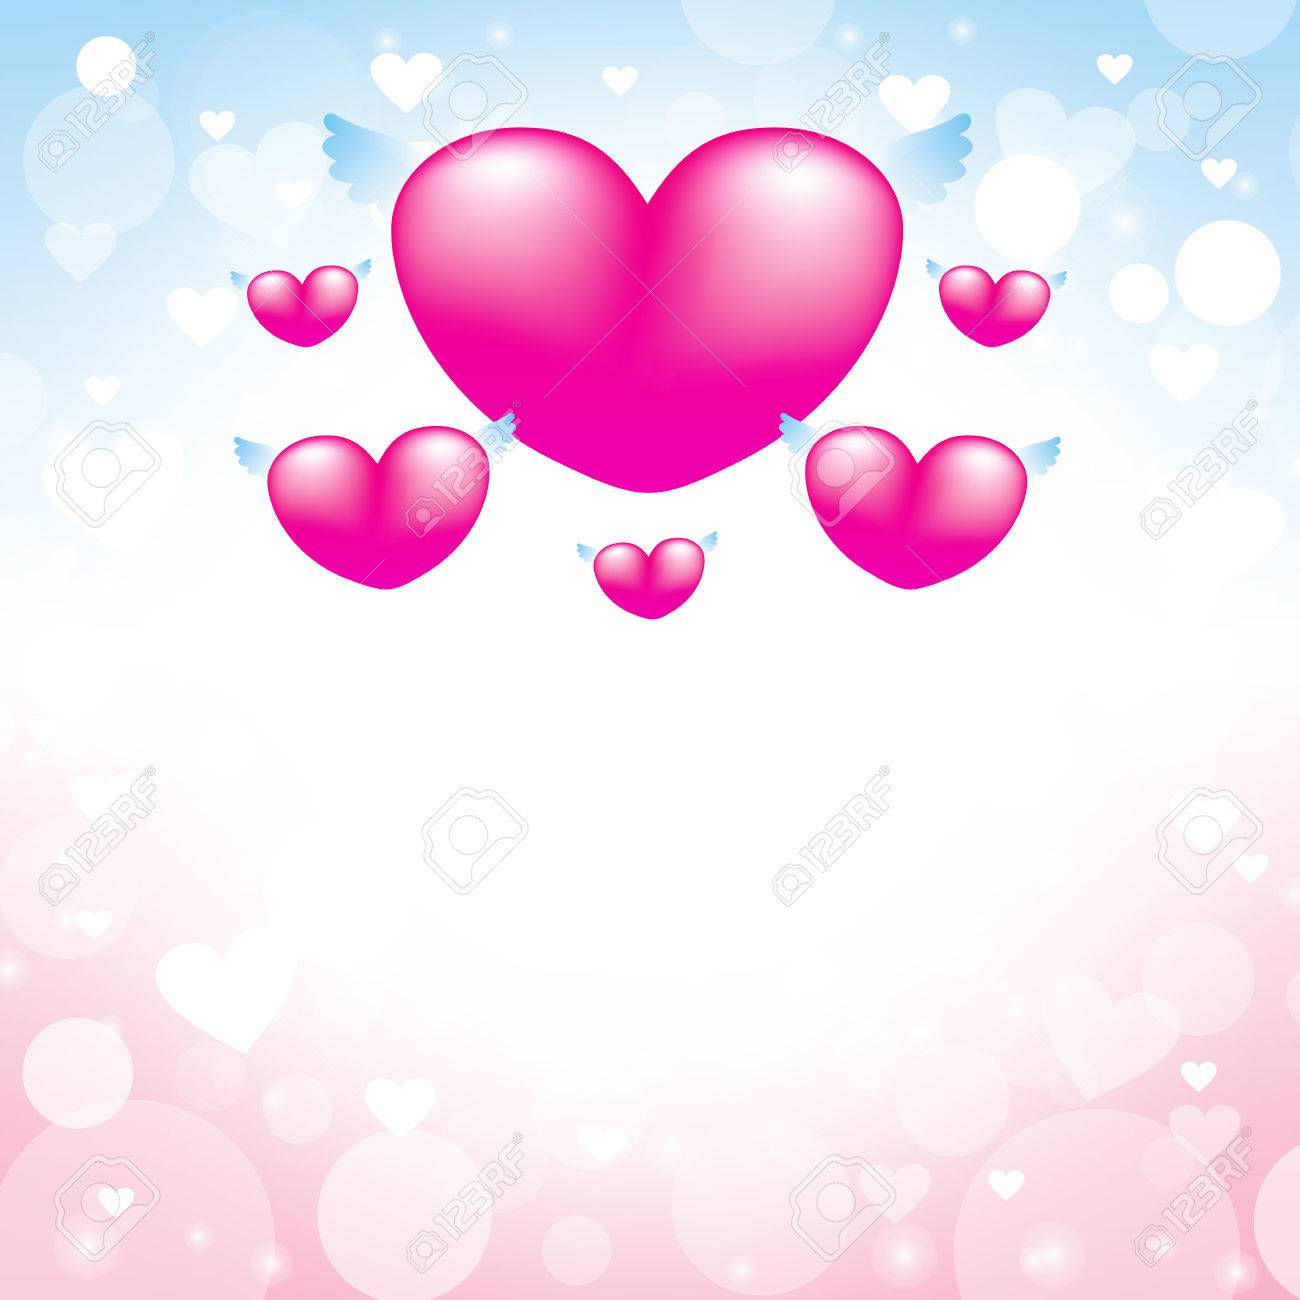 Love heart pink background design for valentines day mothers love heart pink background design for valentines day mothers day birthday wedding bookmarktalkfo Image collections